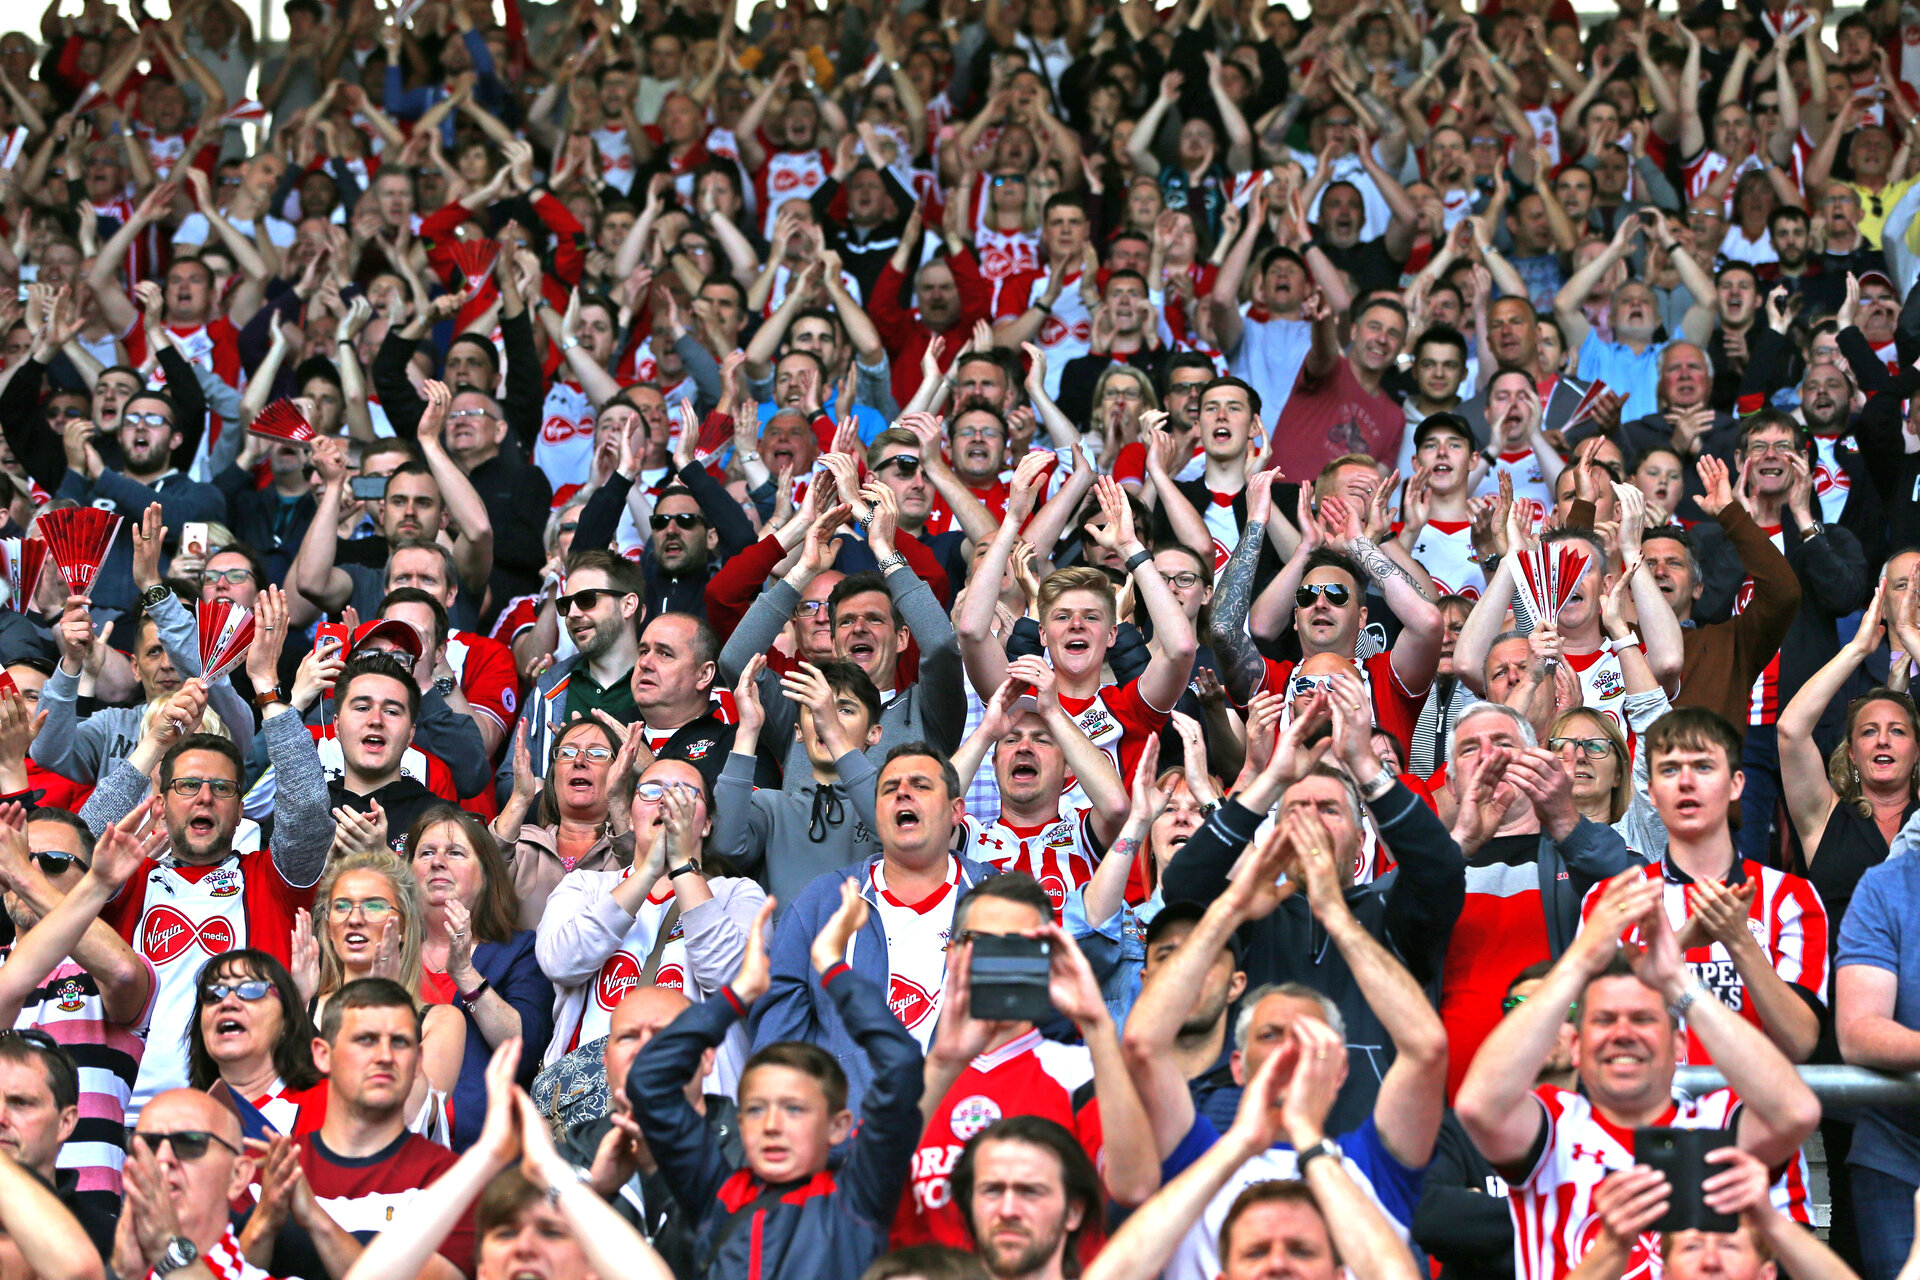 SOUTHAMPTON, ENGLAND - MAY 13: Southampton FC  fans during the Premier League match between Southampton and Manchester City at St Mary's Stadium on May 13, 2018 in Southampton, England. (Photo by James Bridle - Southampton FC/Southampton FC via Getty Images)